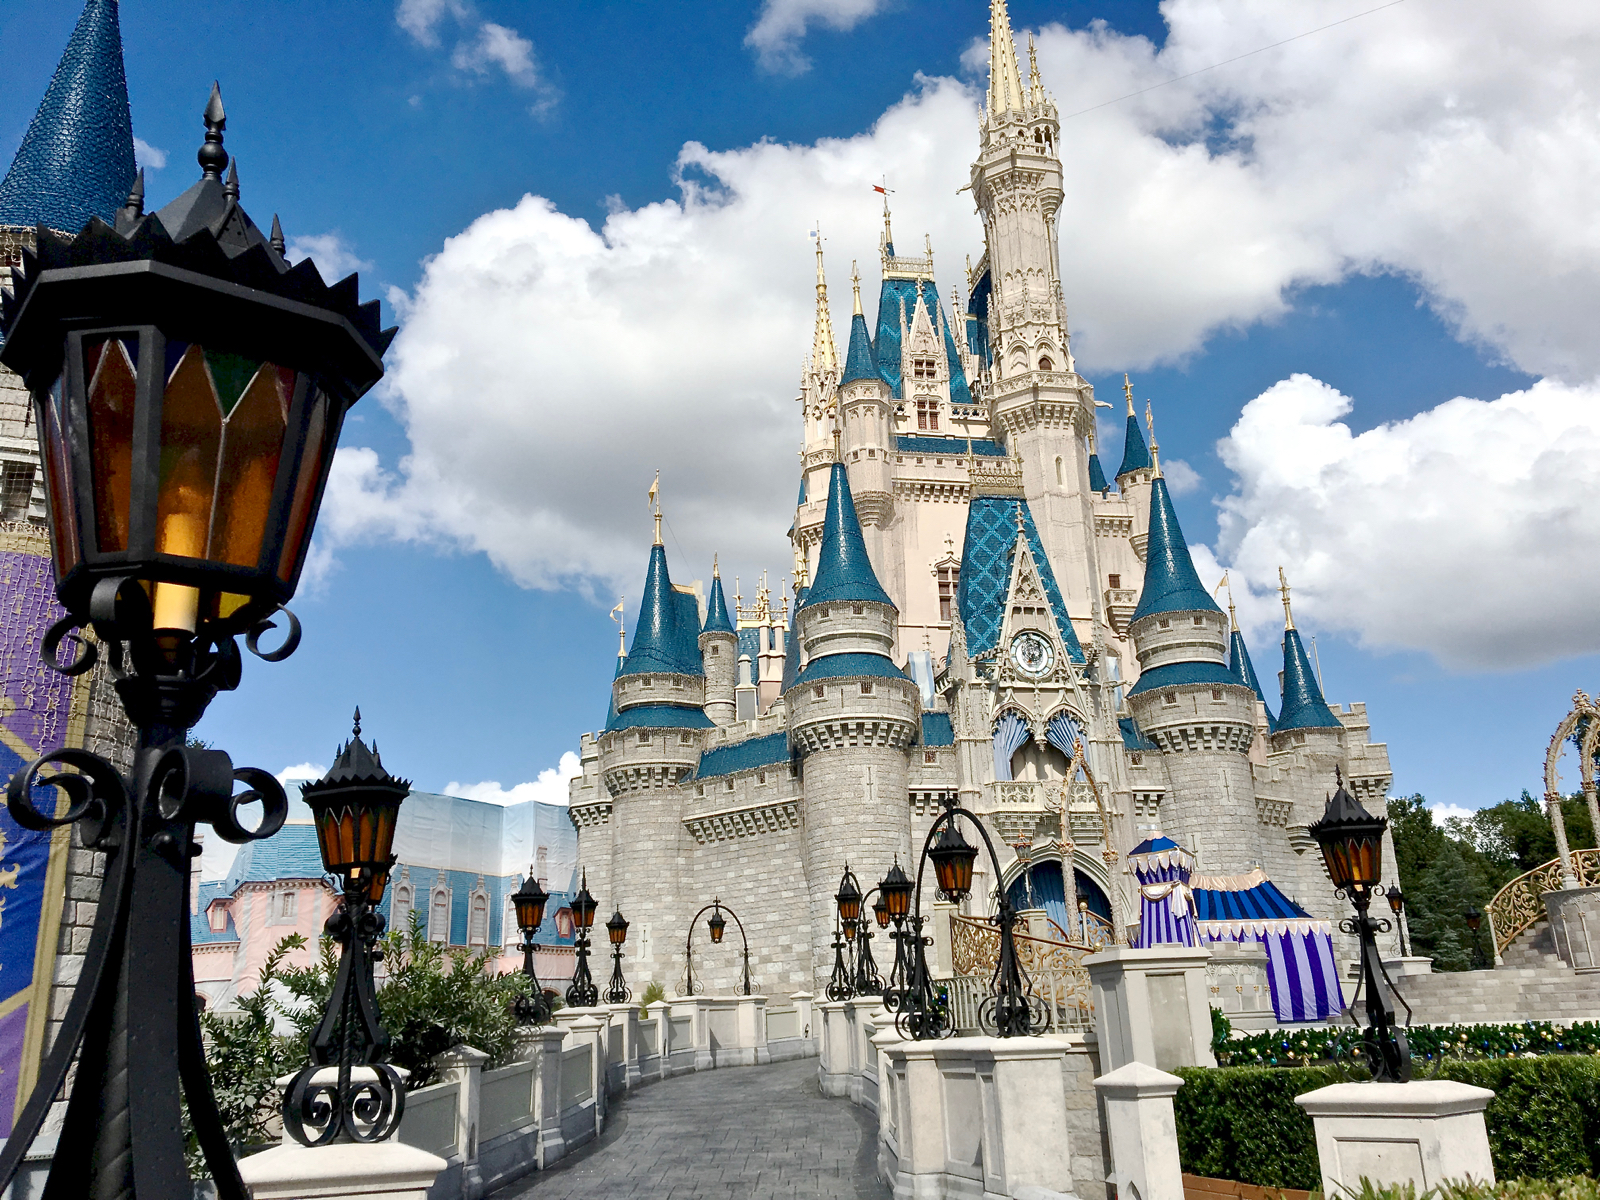 Mouseplanet walt disney world resort update for november 9 16 the new guest approaches to cinderella castle at magic kingdom are nearly complete adorned with fantasyland inspired antique looking light fixtures arubaitofo Choice Image